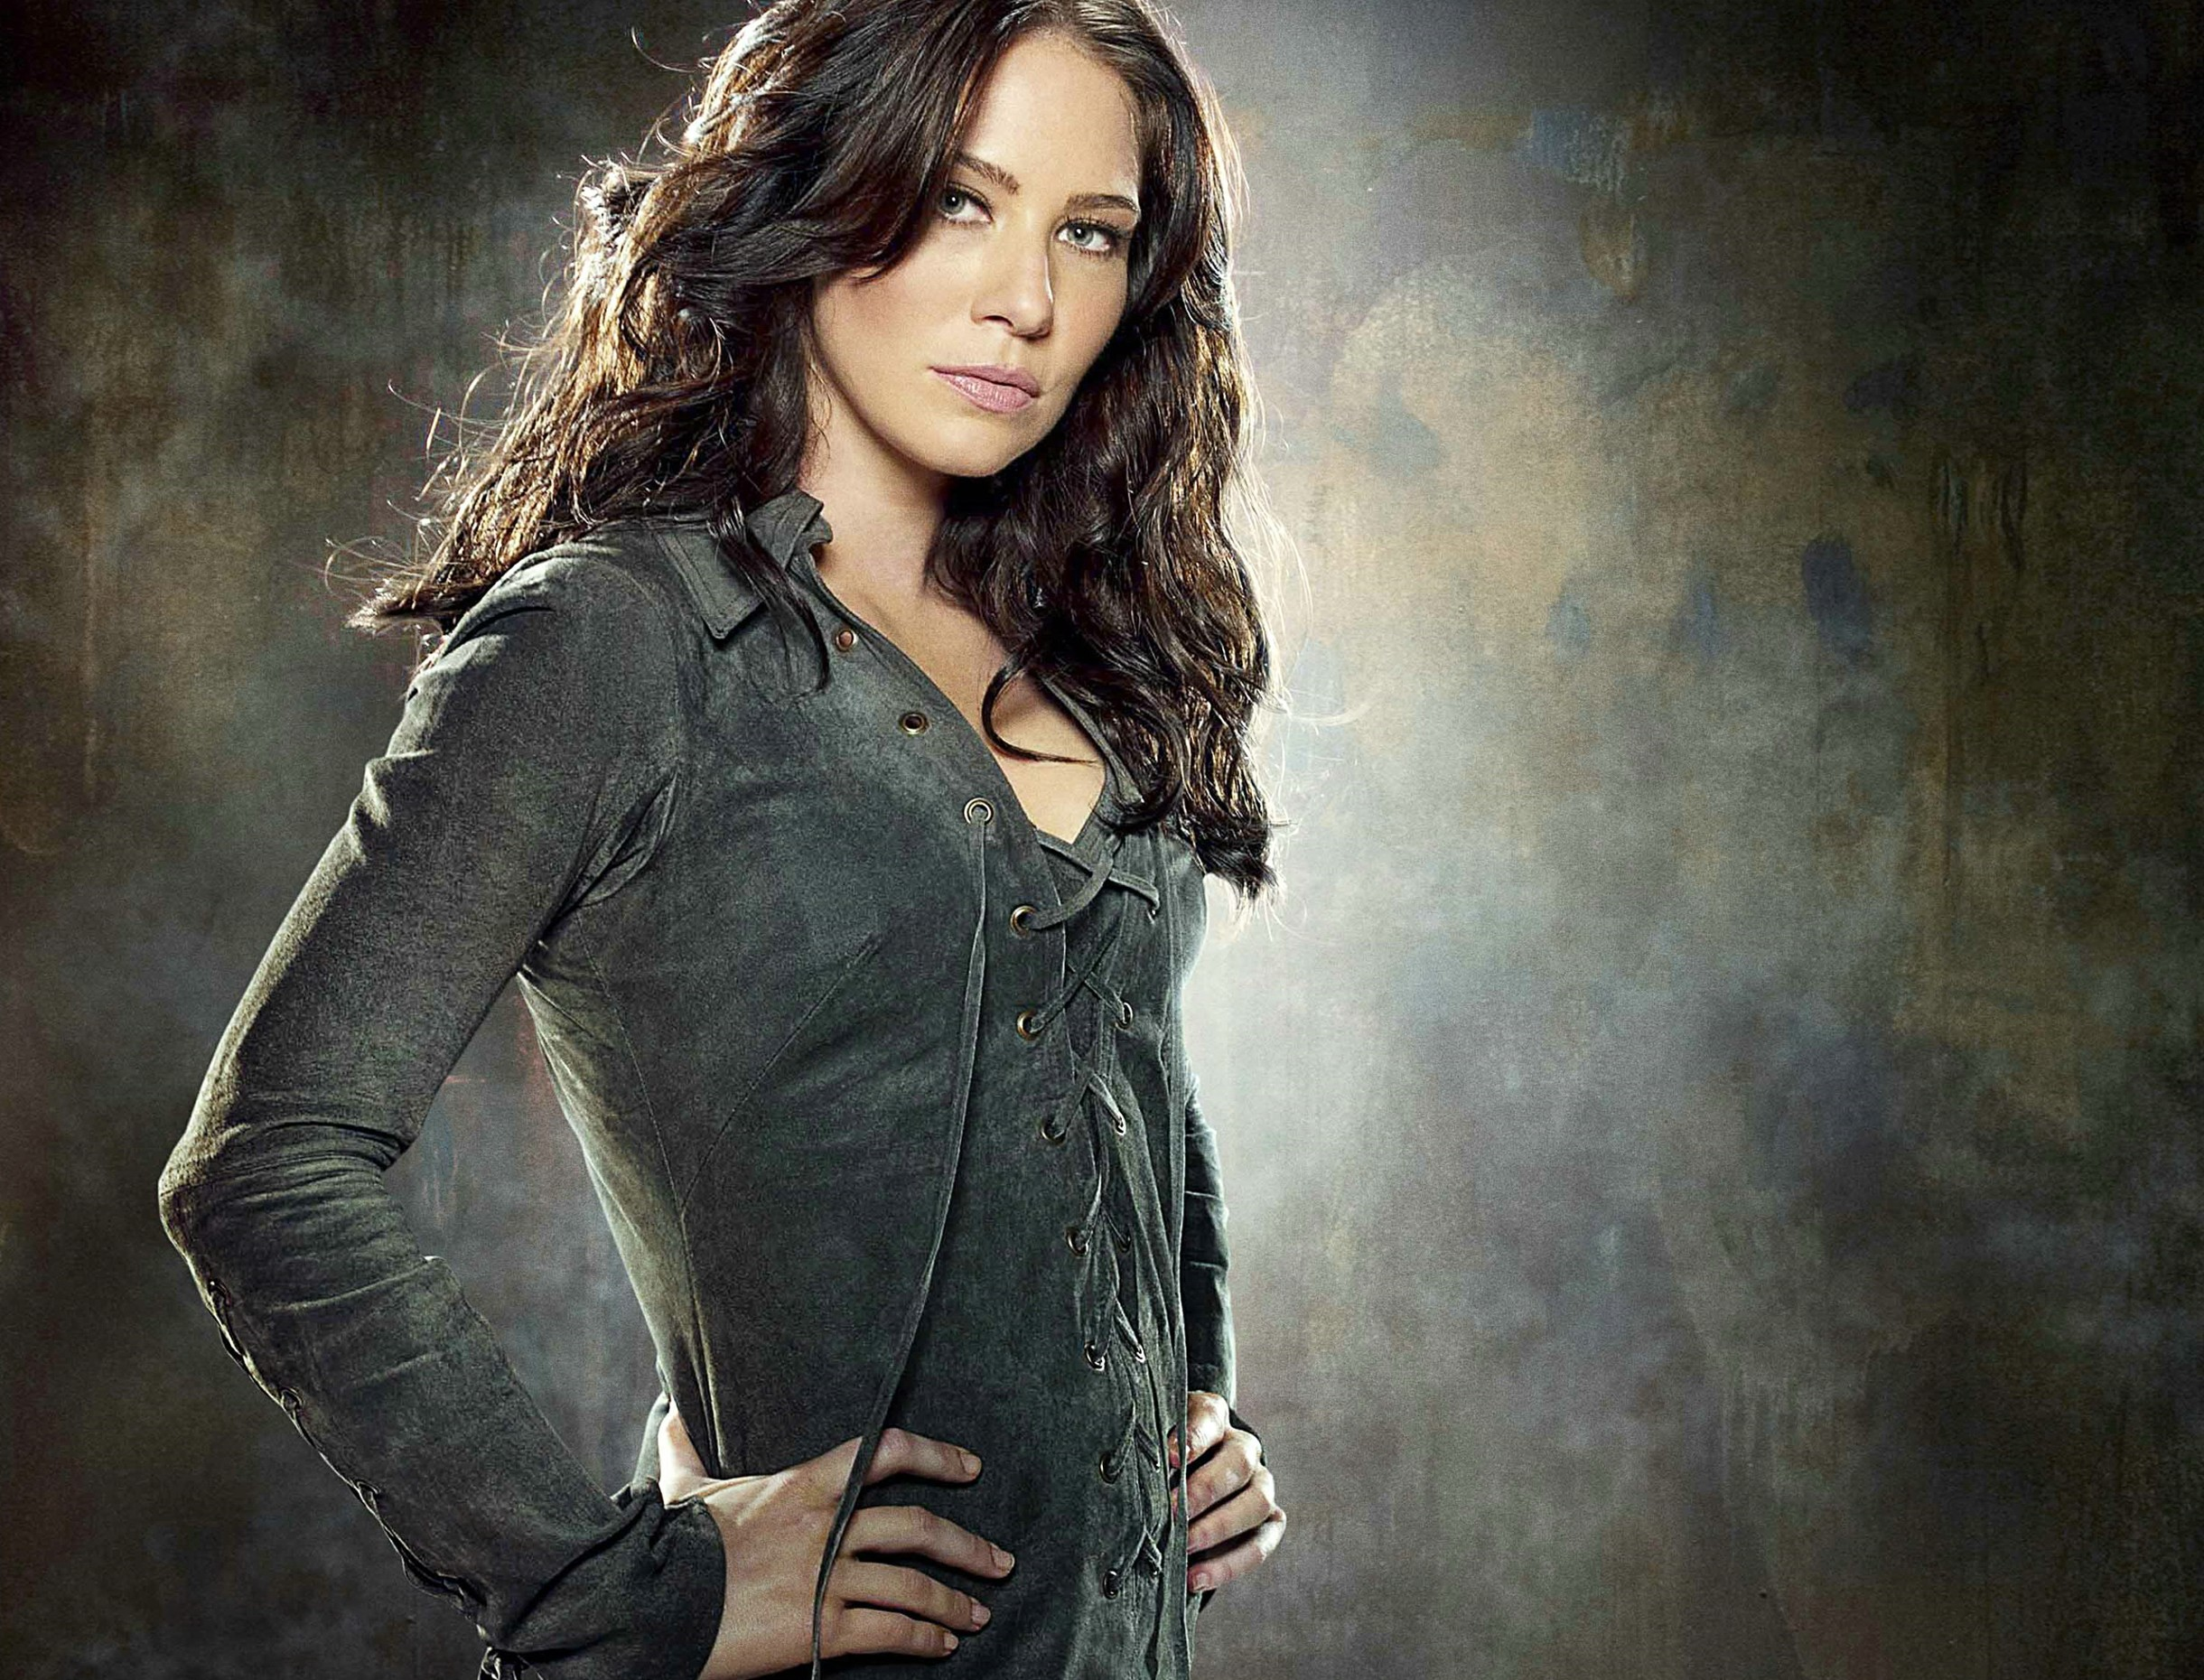 Wallpaper di Lynn Collins che interpreta Silver Fox nel film X-Men - Le origini: Wolverine